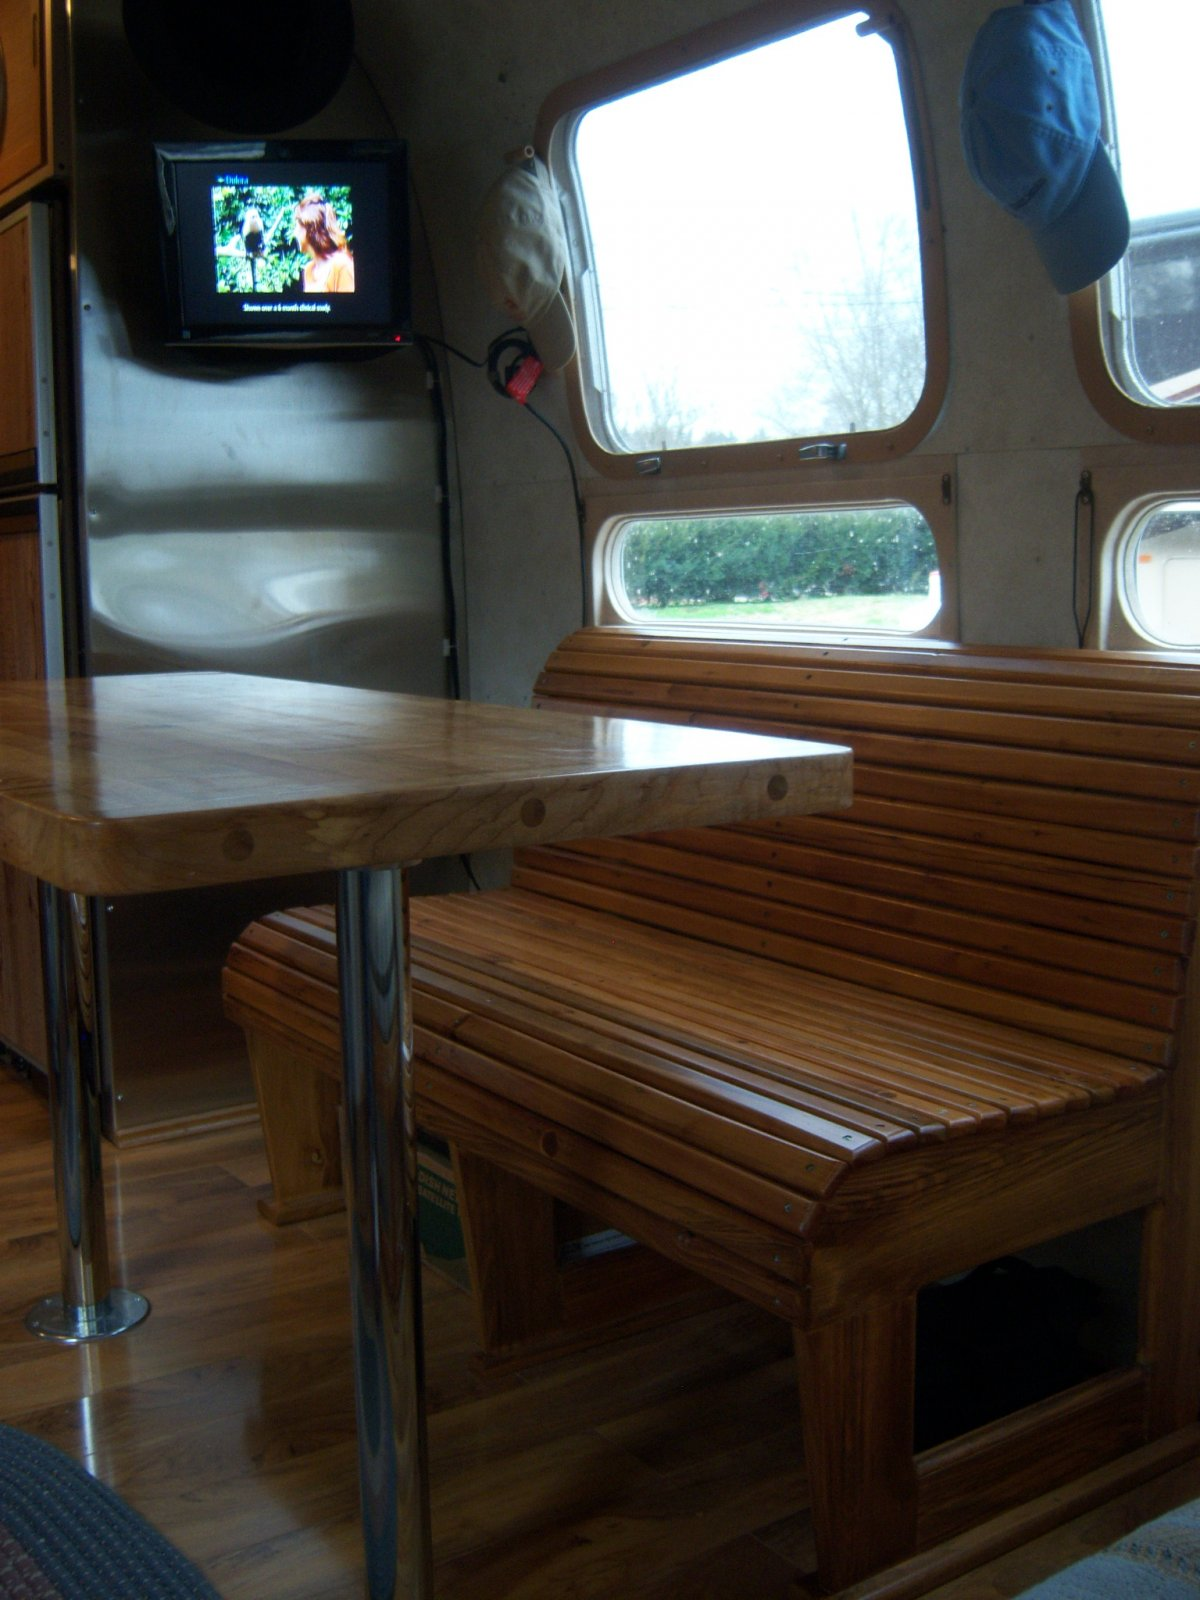 Click image for larger version  Name:Airstream Interior 009.jpg Views:114 Size:231.3 KB ID:146184